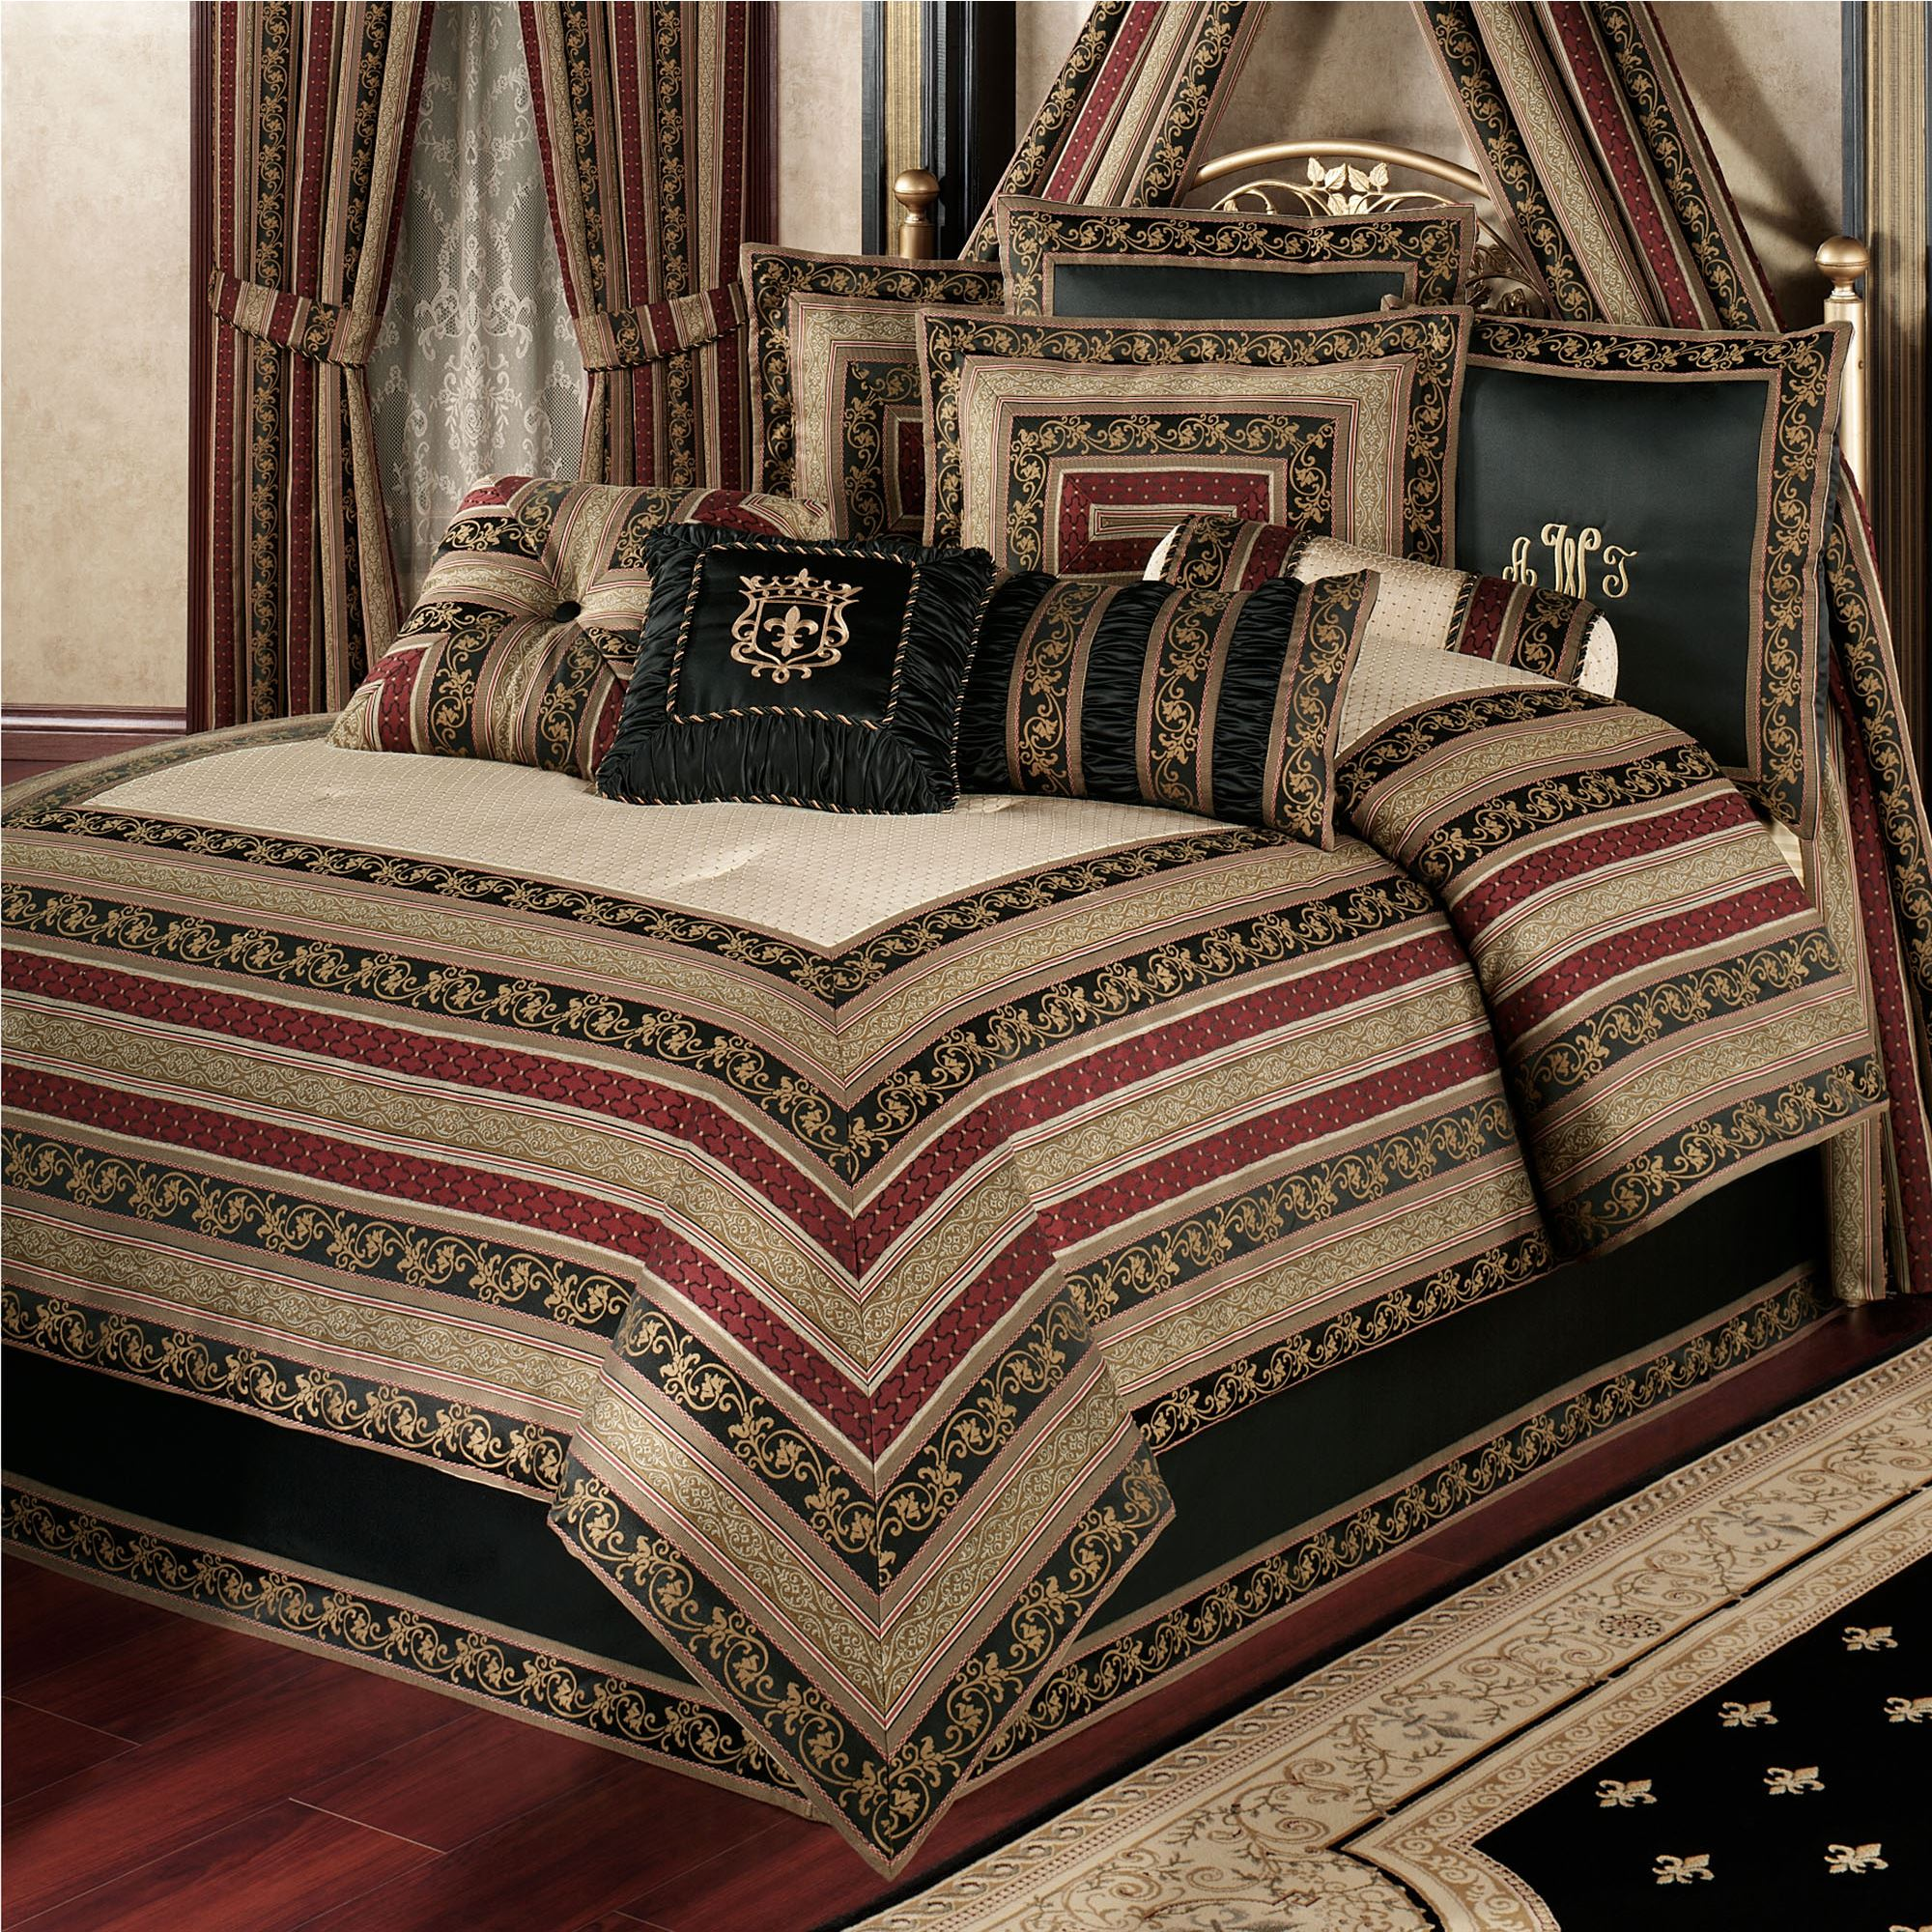 Triomphe old world style comforter bedding for Old world style beds